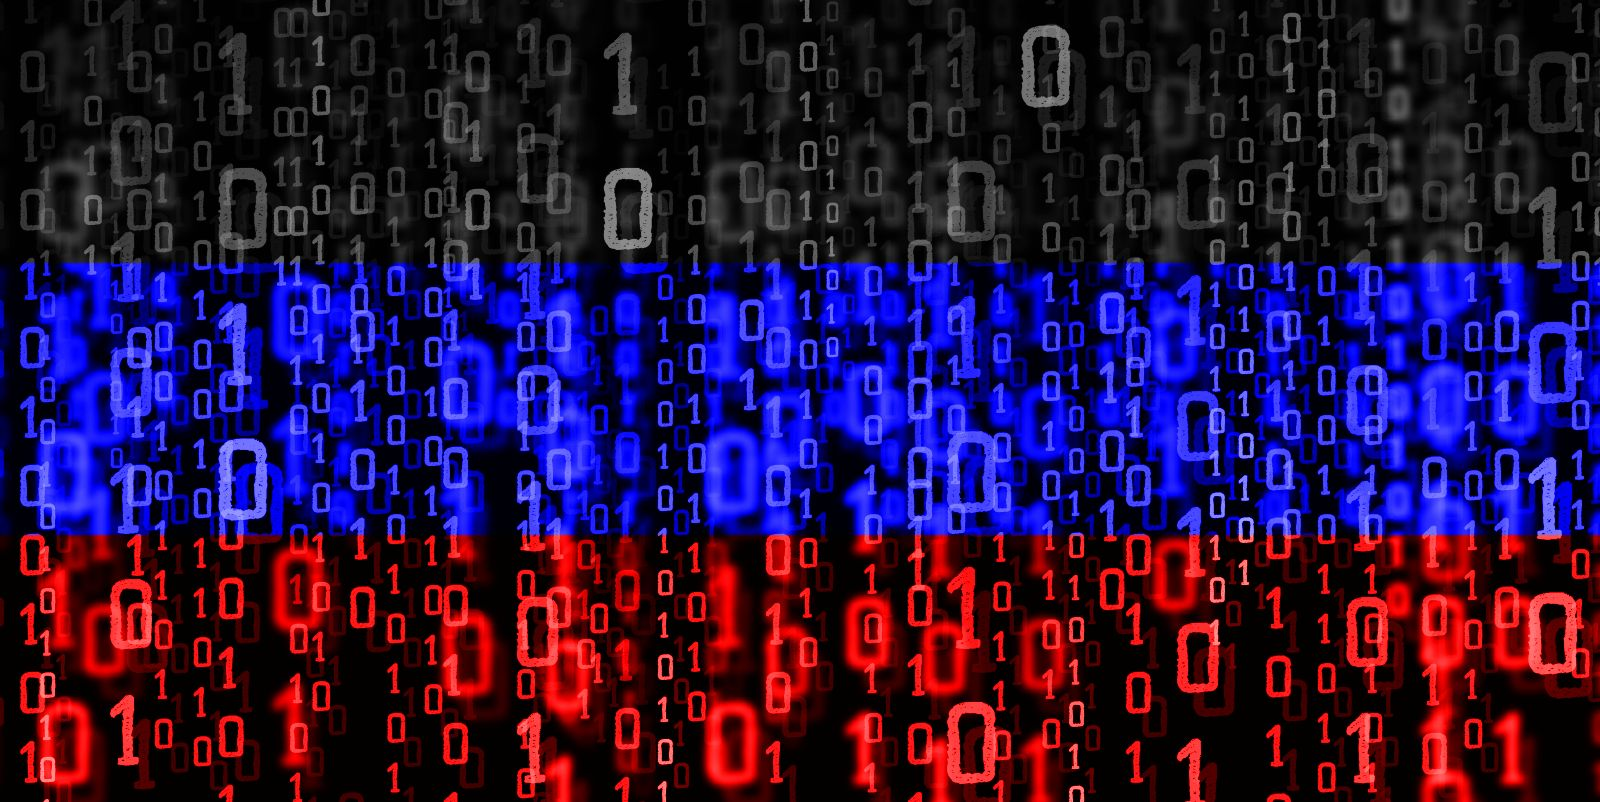 NSA: Top 5 Vulnerabilities Actively Abused By Russian Govt Hackers